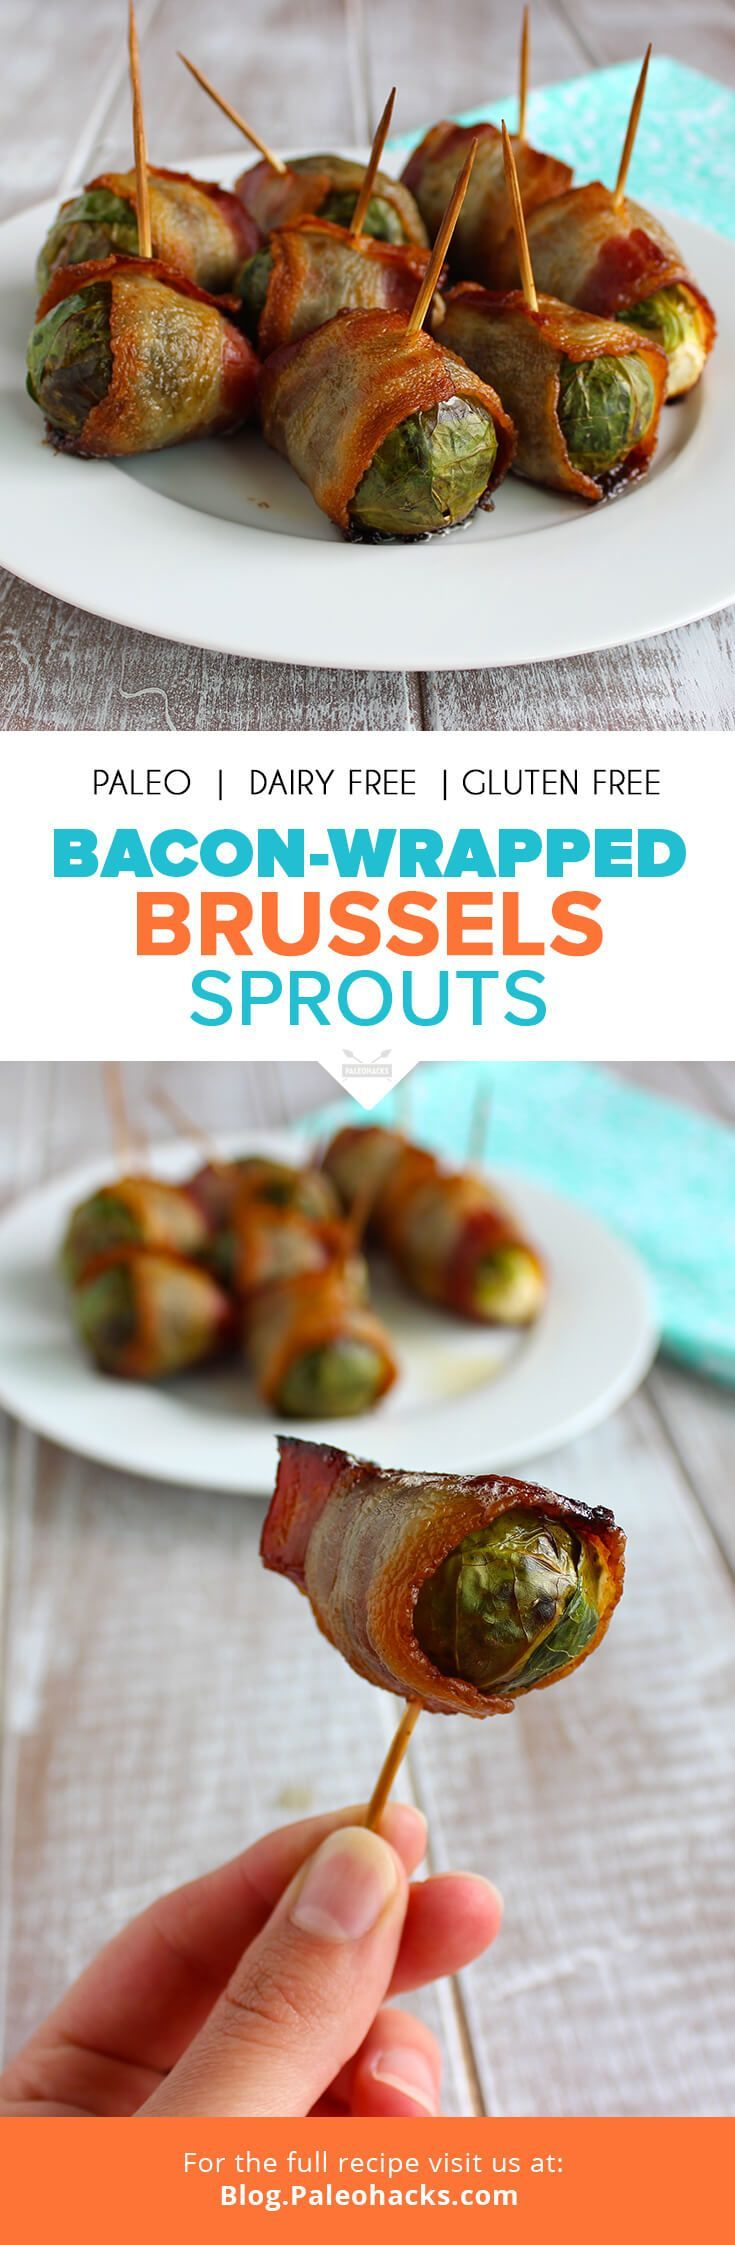 PIN-bacon-wrapped-brussel-sprouts-2.jpg